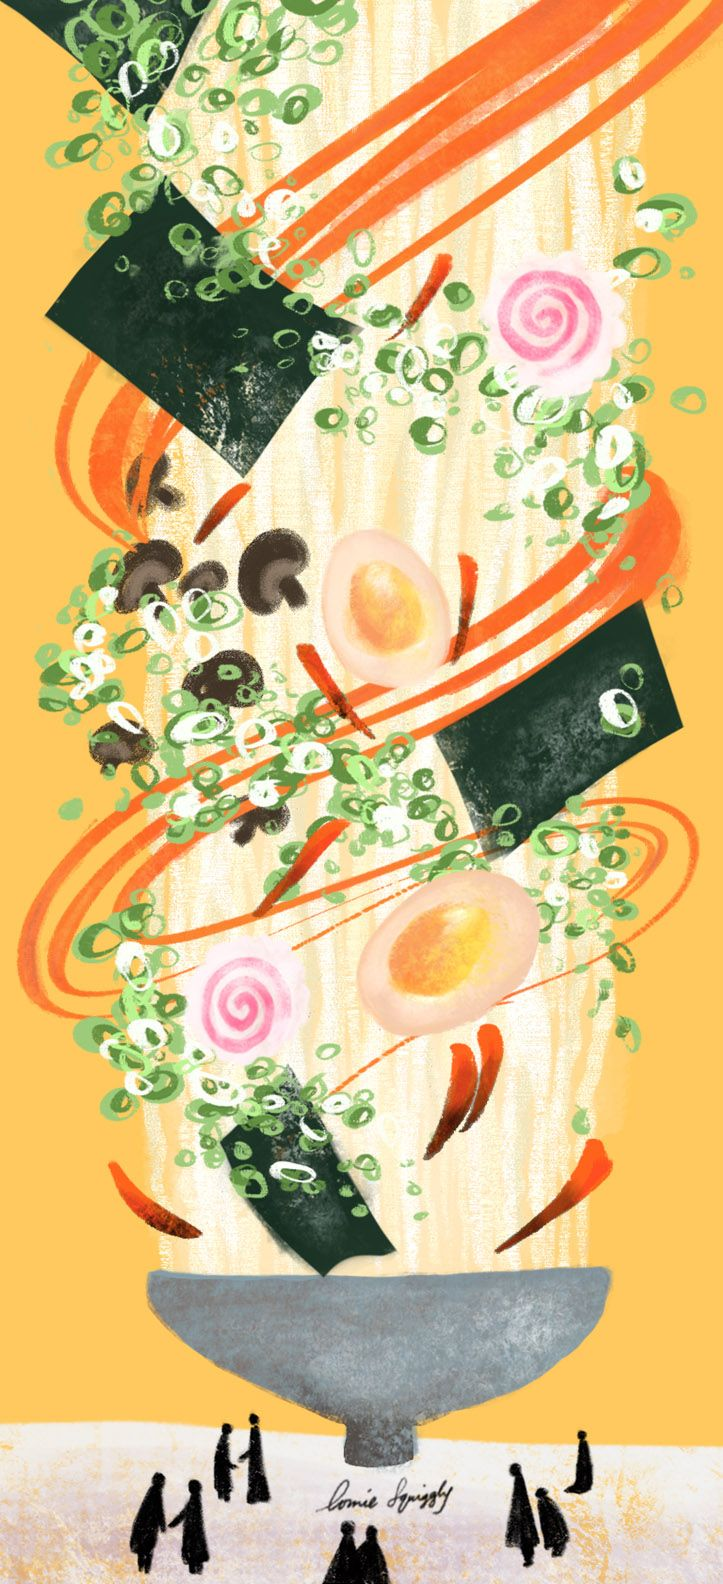 Strangely delicious ramen. Created by Lorrie Squiggly, 2016